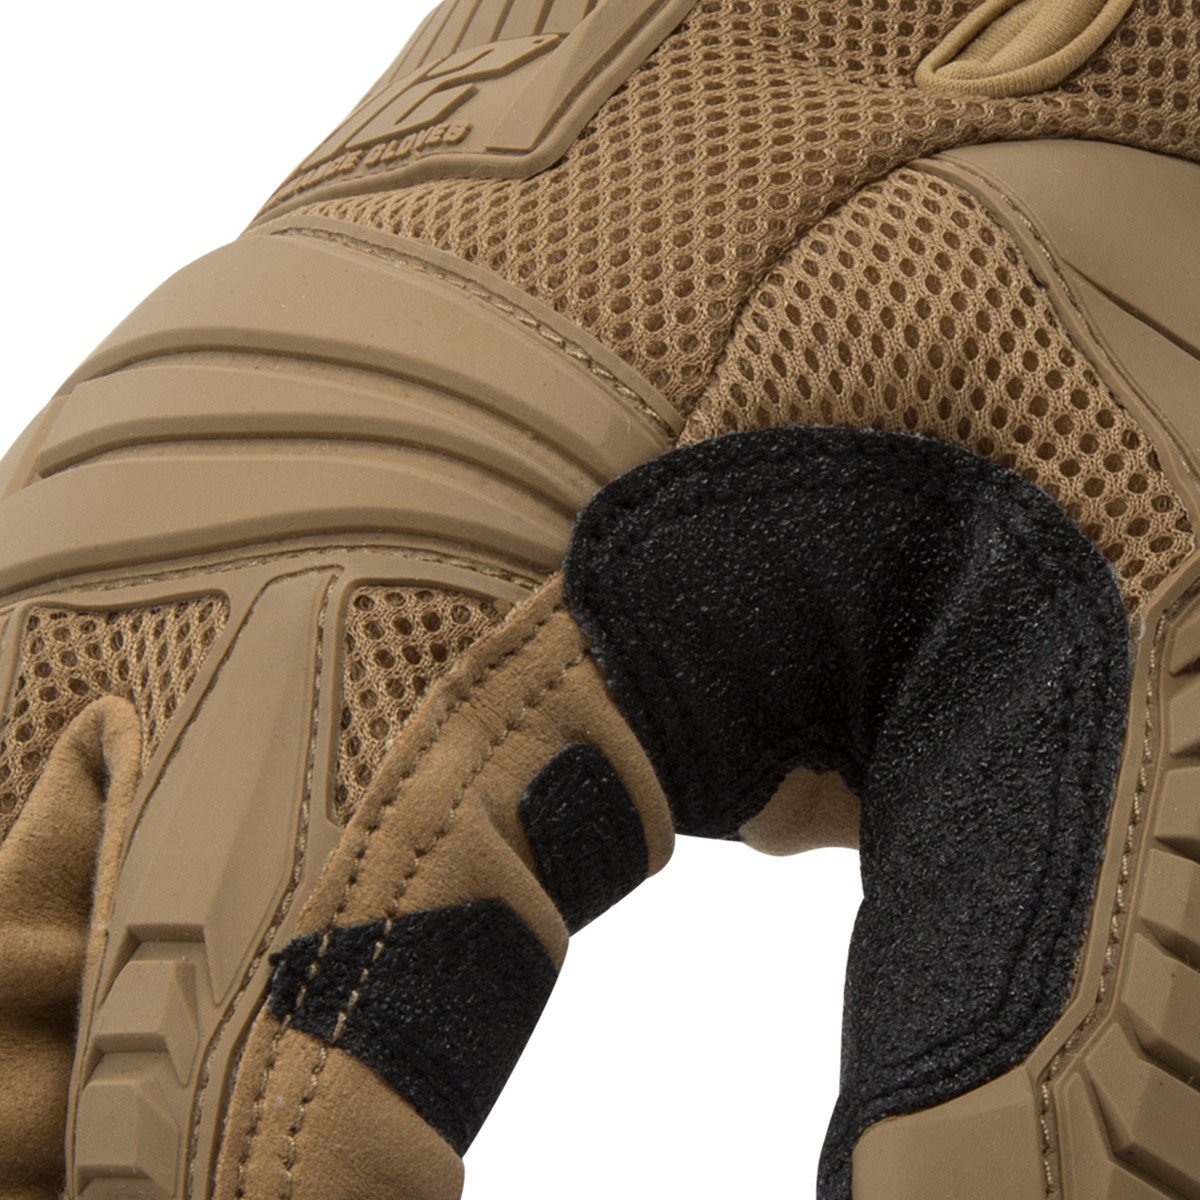 212 Performance Gloves IMPC3AM-70-010 Cut Resistant Impact Air Mesh Gloves (EN Level 3), Large by 212 Performance Gloves (Image #4)